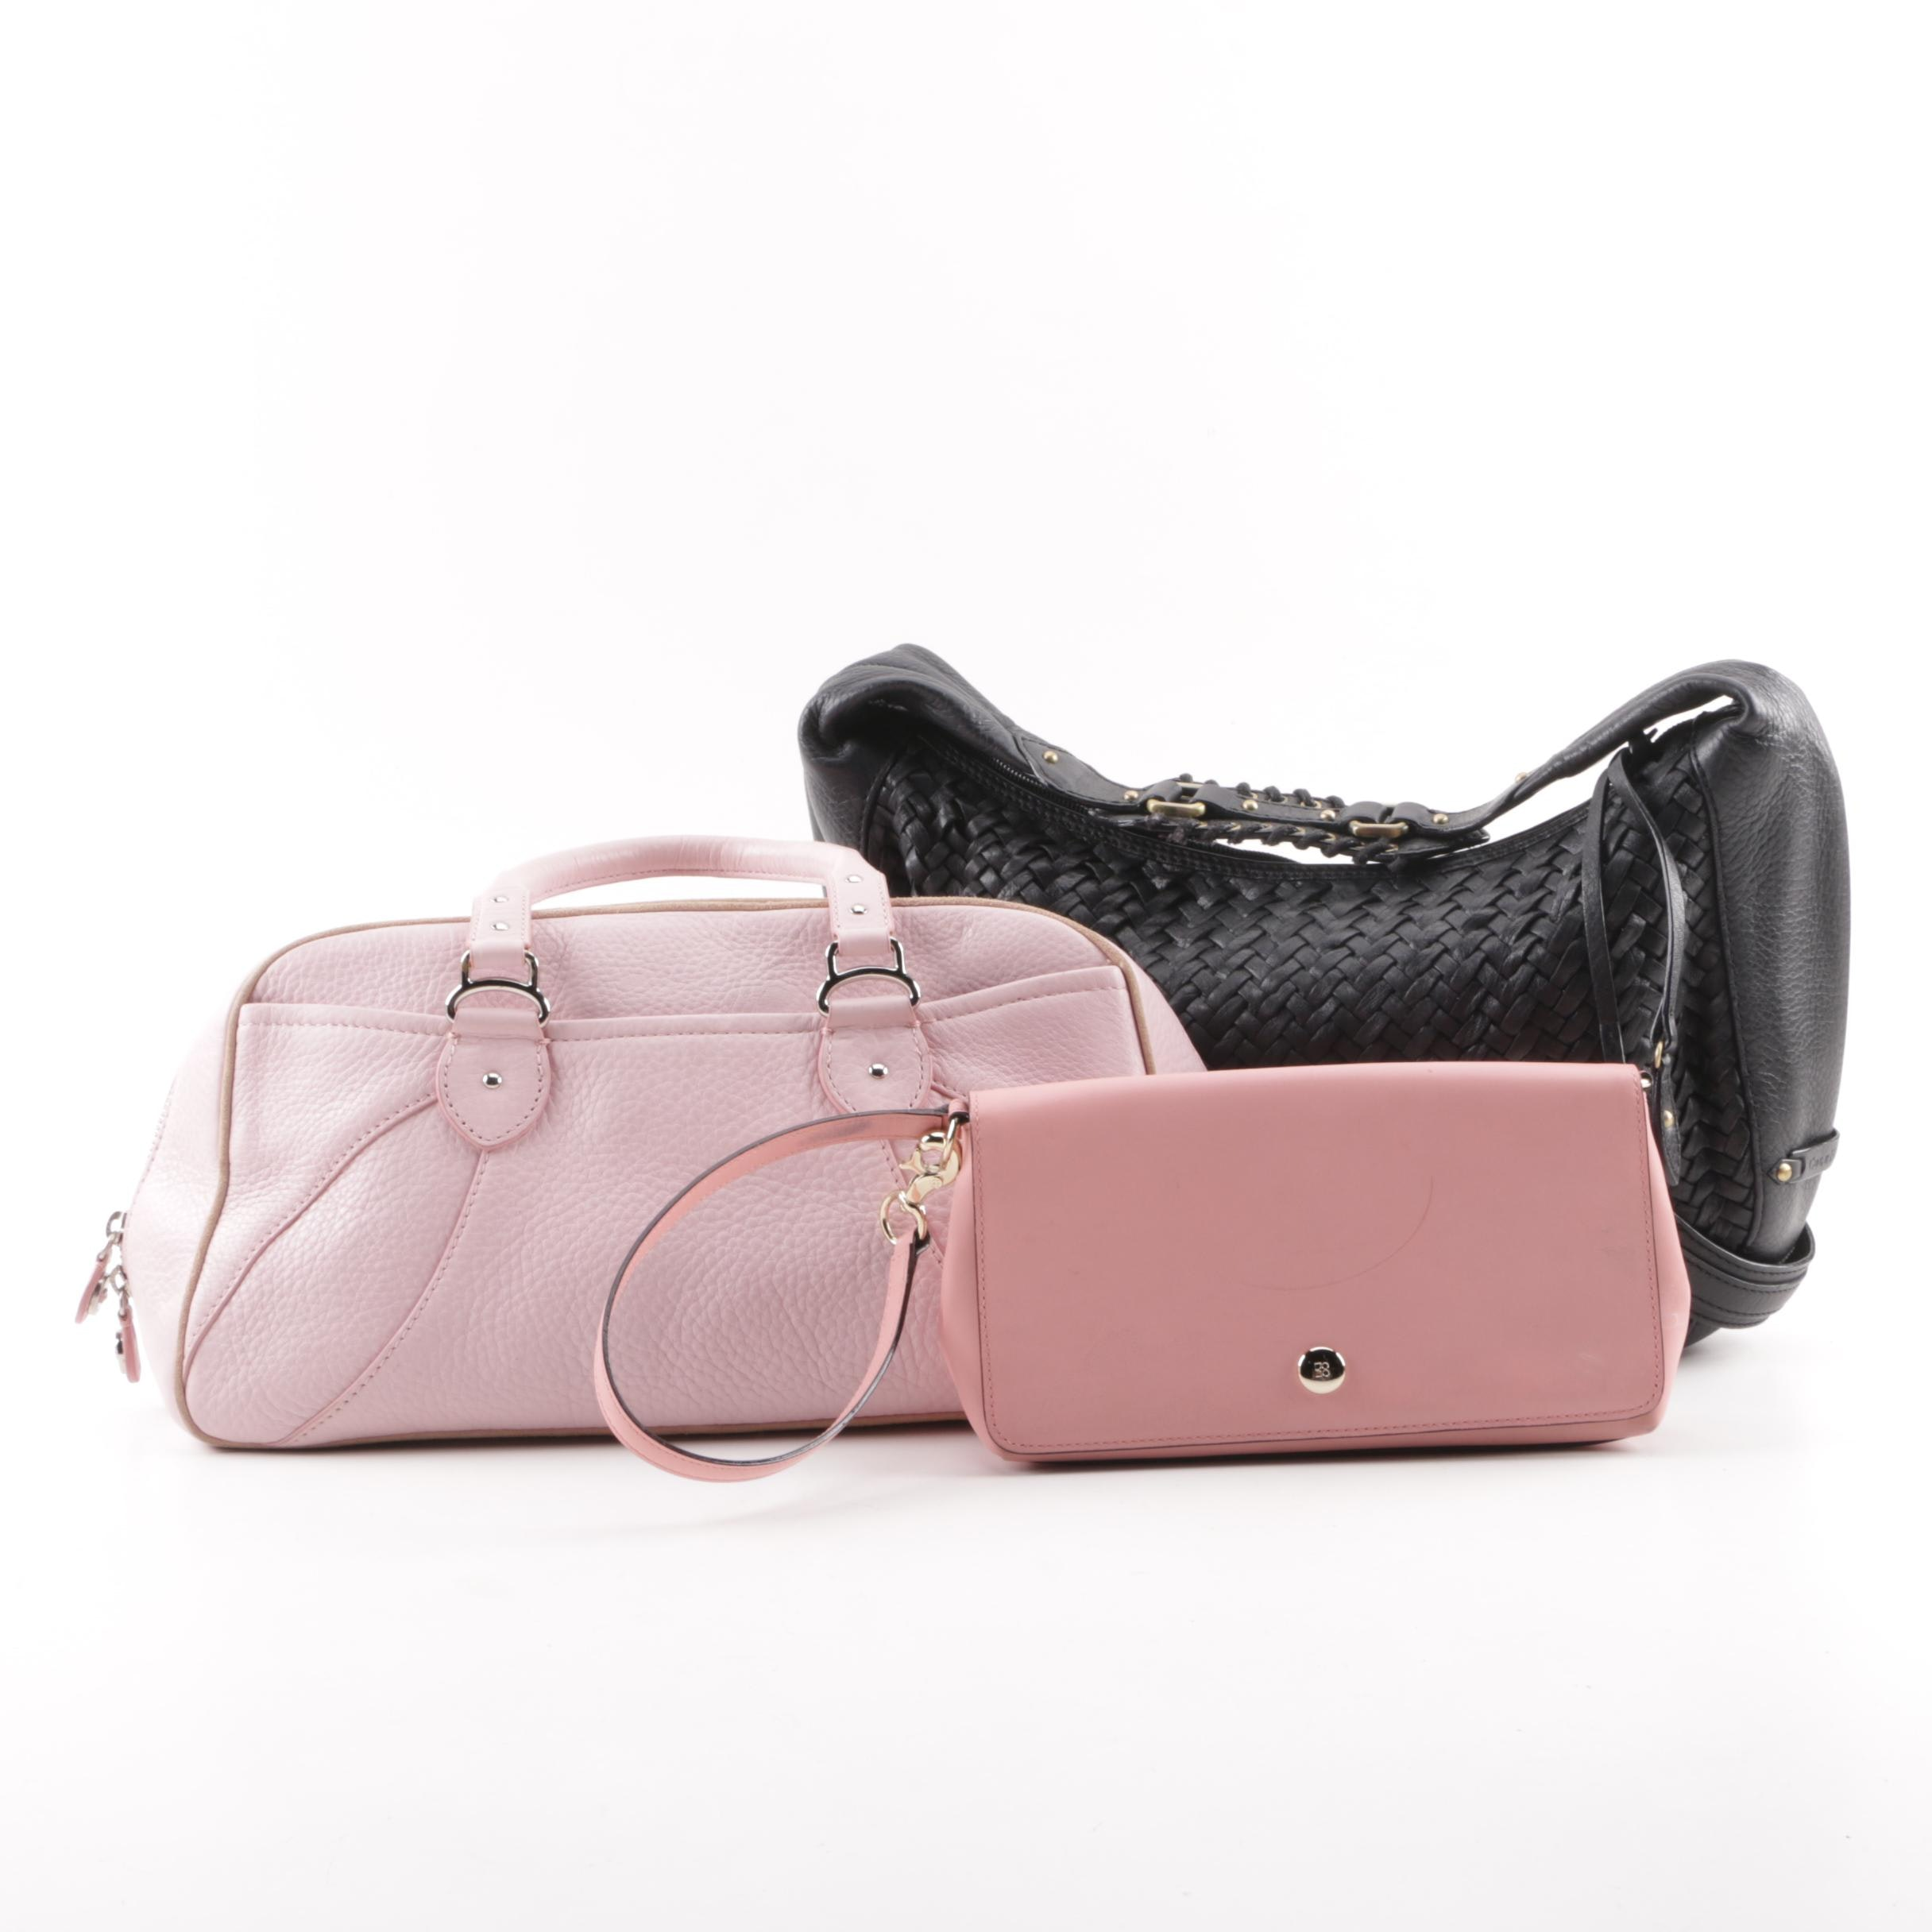 Women's Handbags Including Kate Spade Wristlet and Cole Haan Handbags